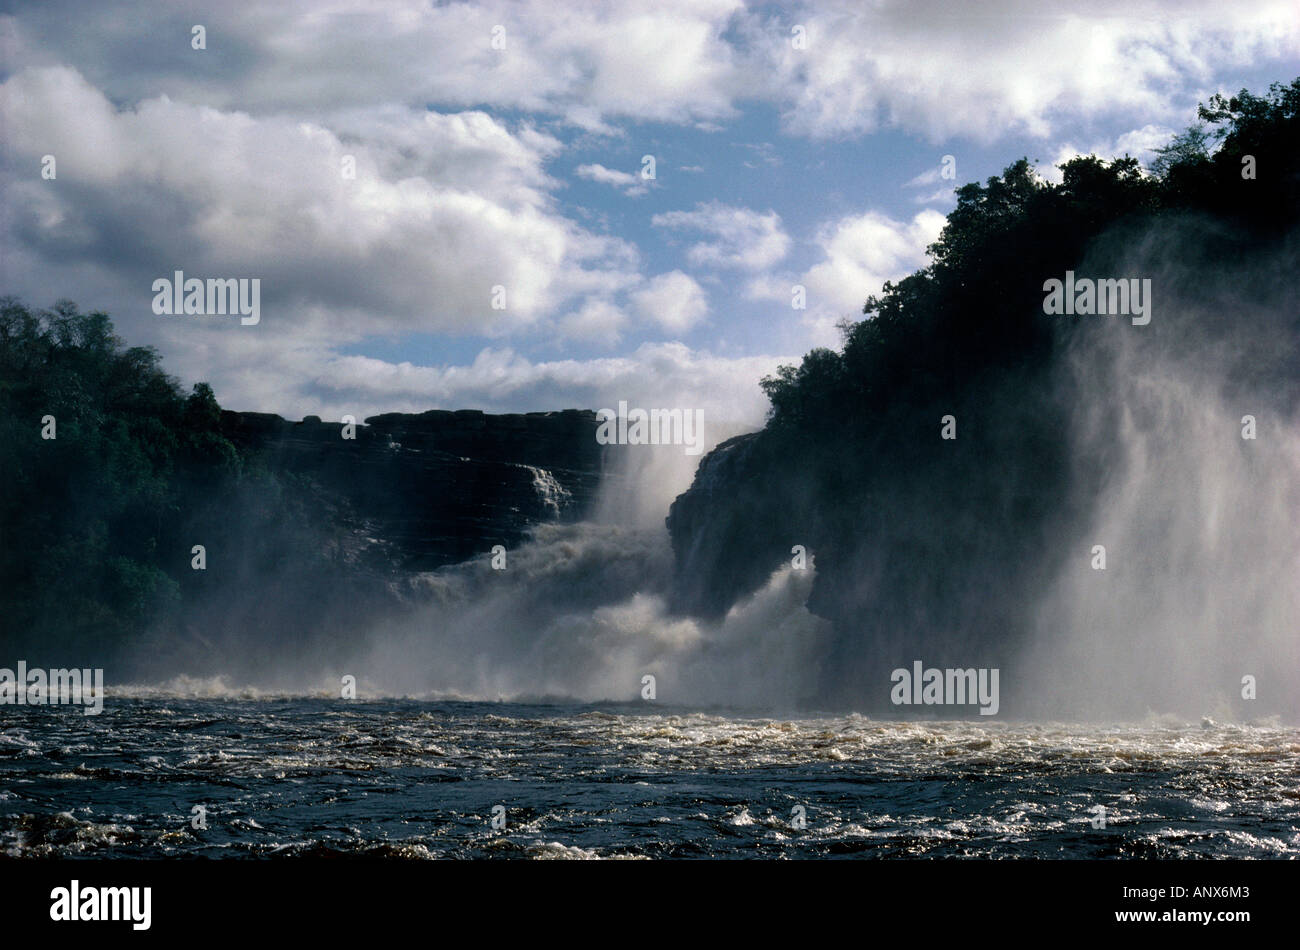 hacha falls canaima nationalpark region of gran sabena venezuela Stock Photo